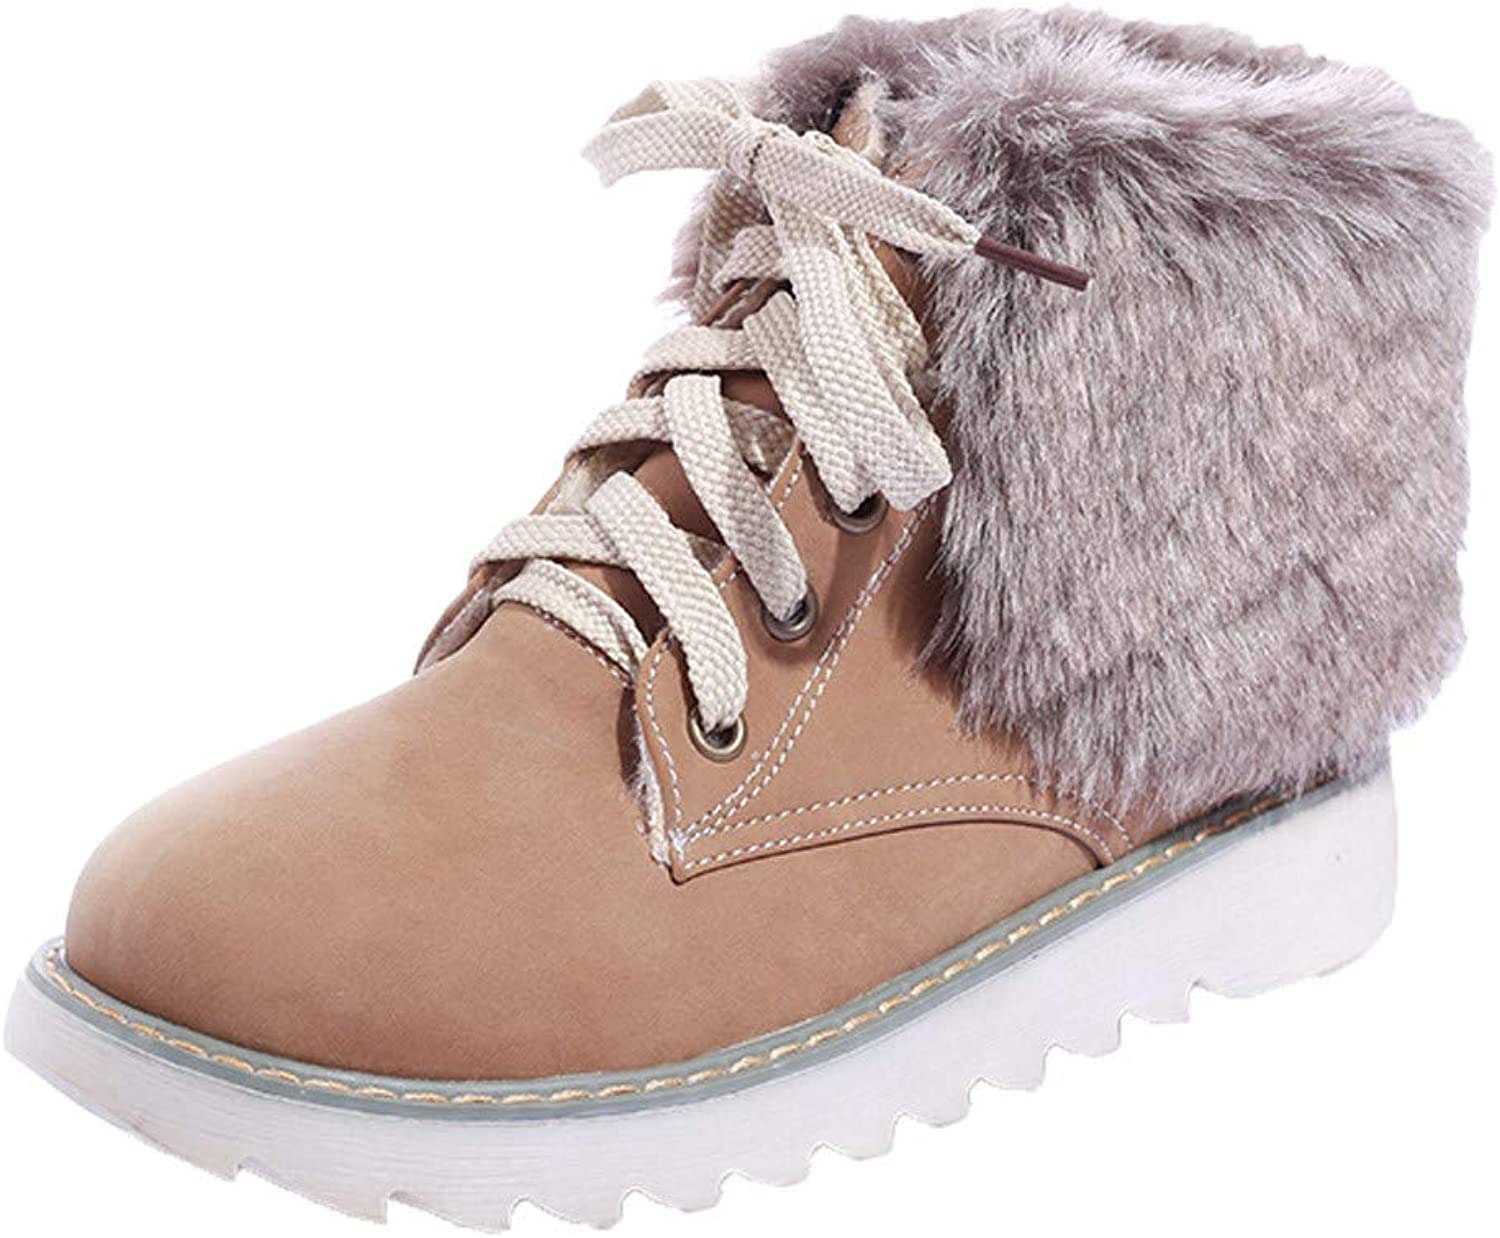 Geetobby Womens Snow Boots Plush Flat Boots shoes Round Head Warm Cotton Boots